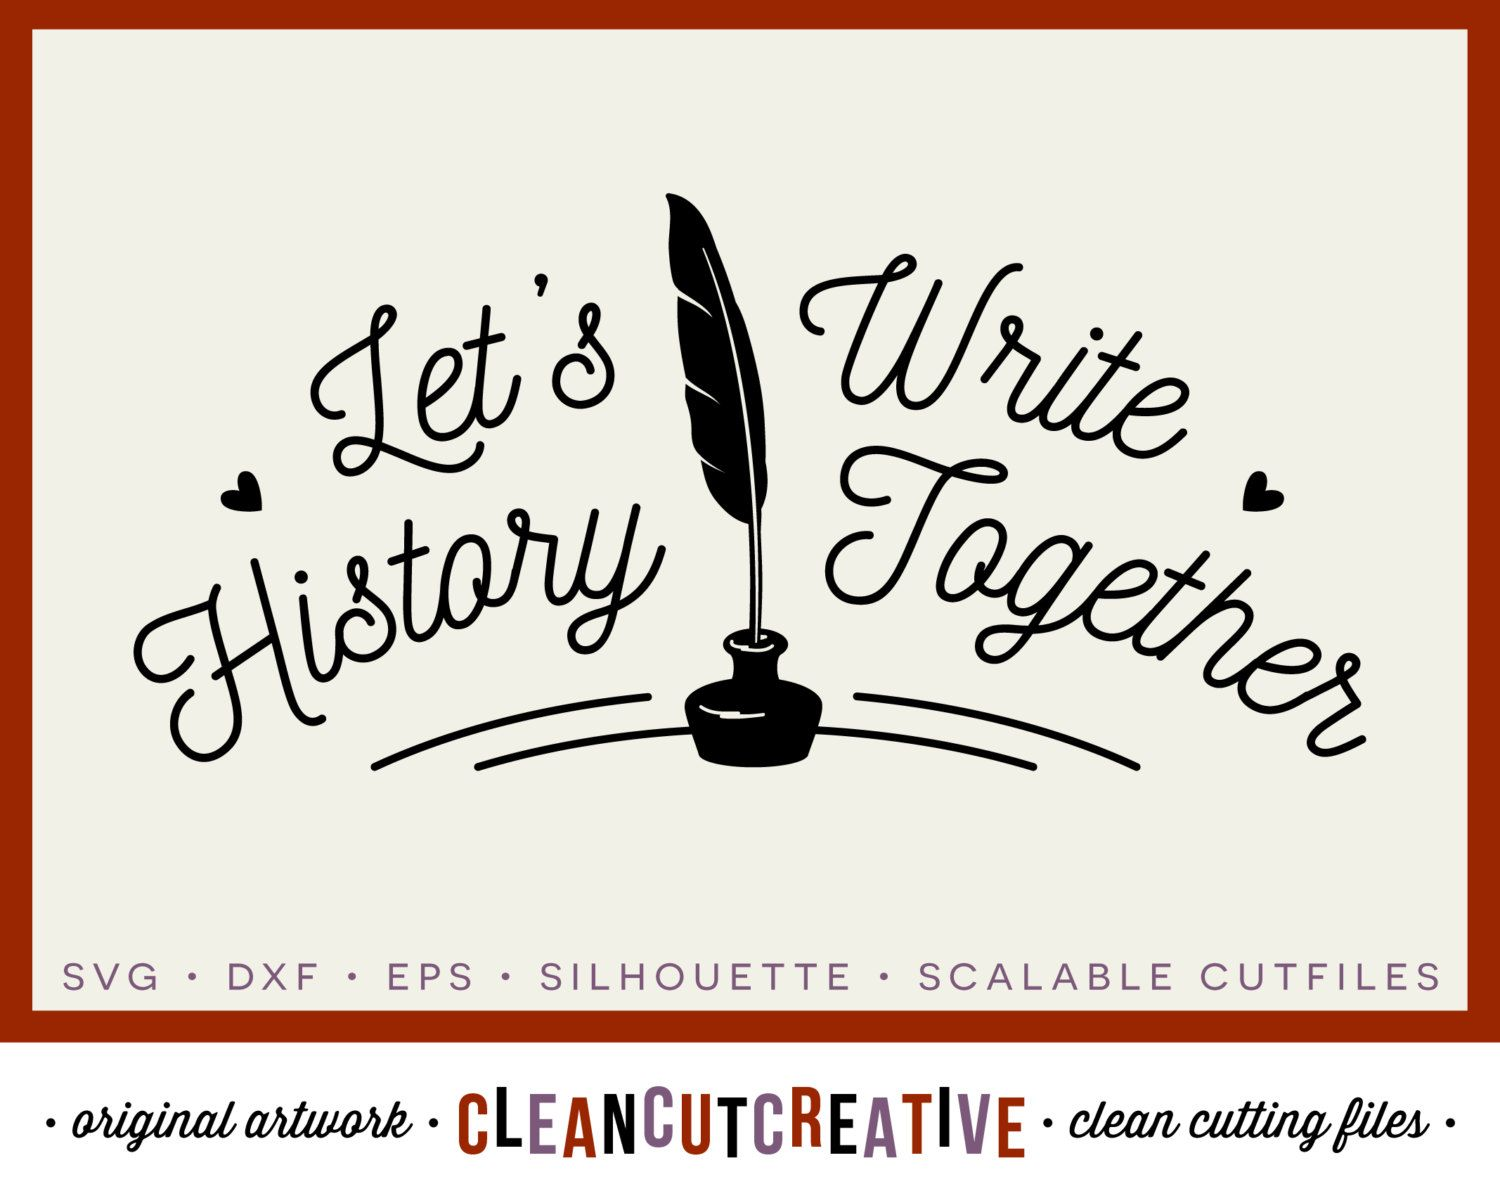 Commercial Quotes Svg Let's Write History Together  Valentine Love Wedding Feather